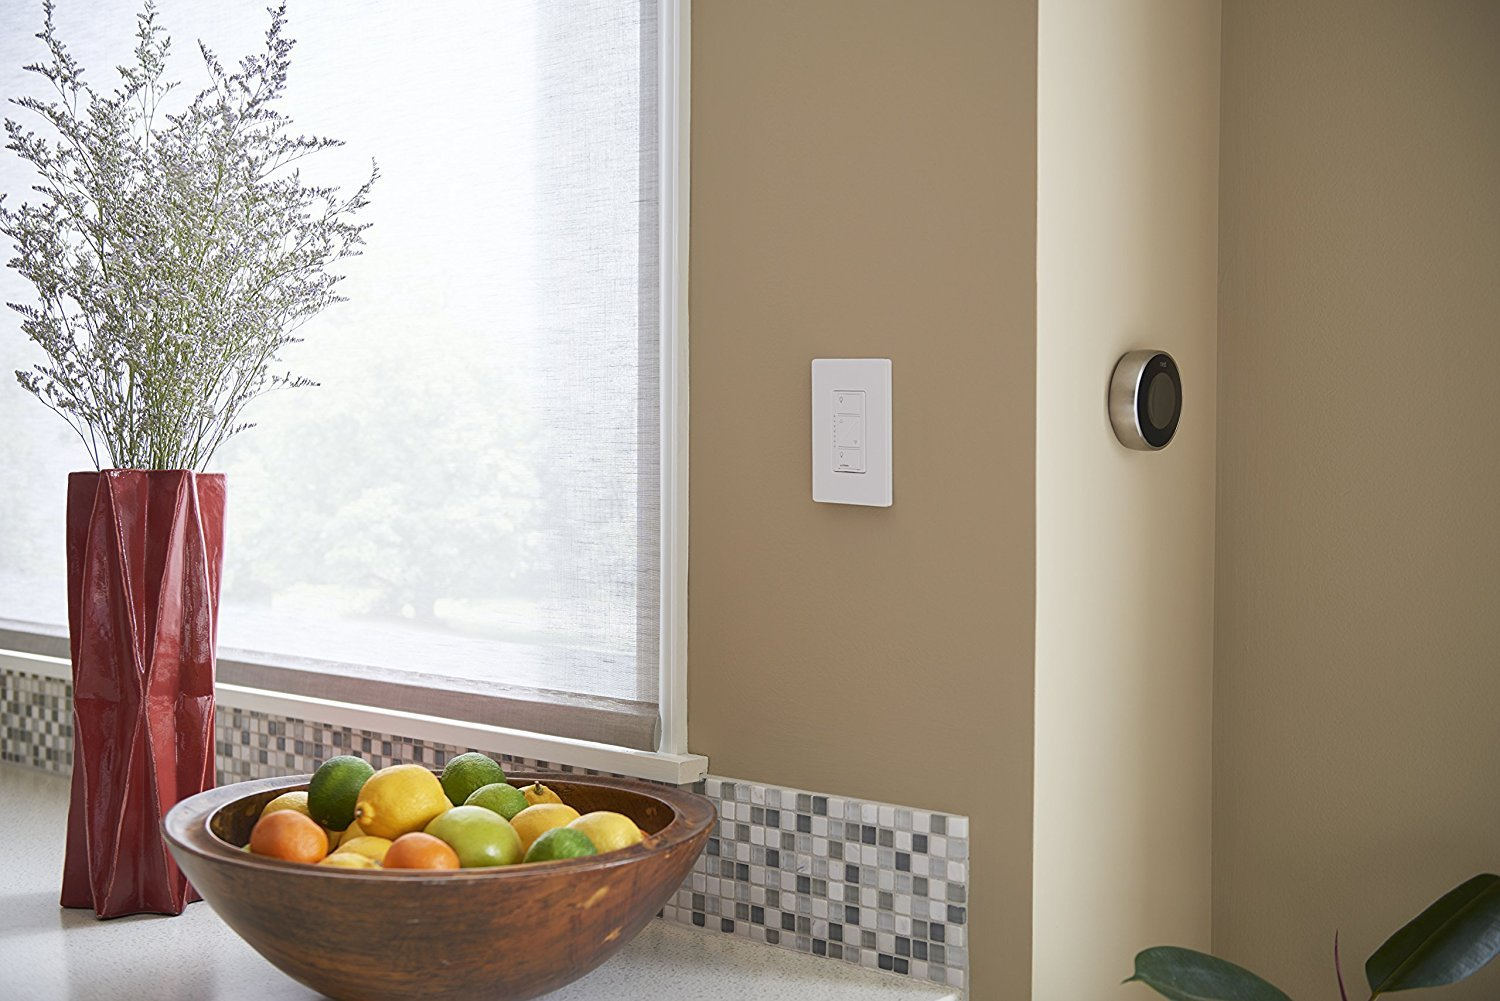 Lutron Caseta Wireless Smart Lighting Dimmer Switch for Wall & Ceiling Lights, PD-6WCL-WH, White, Works with Alexa, Apple HomeKit, and the Google Assistant by Lutron (Image #4)